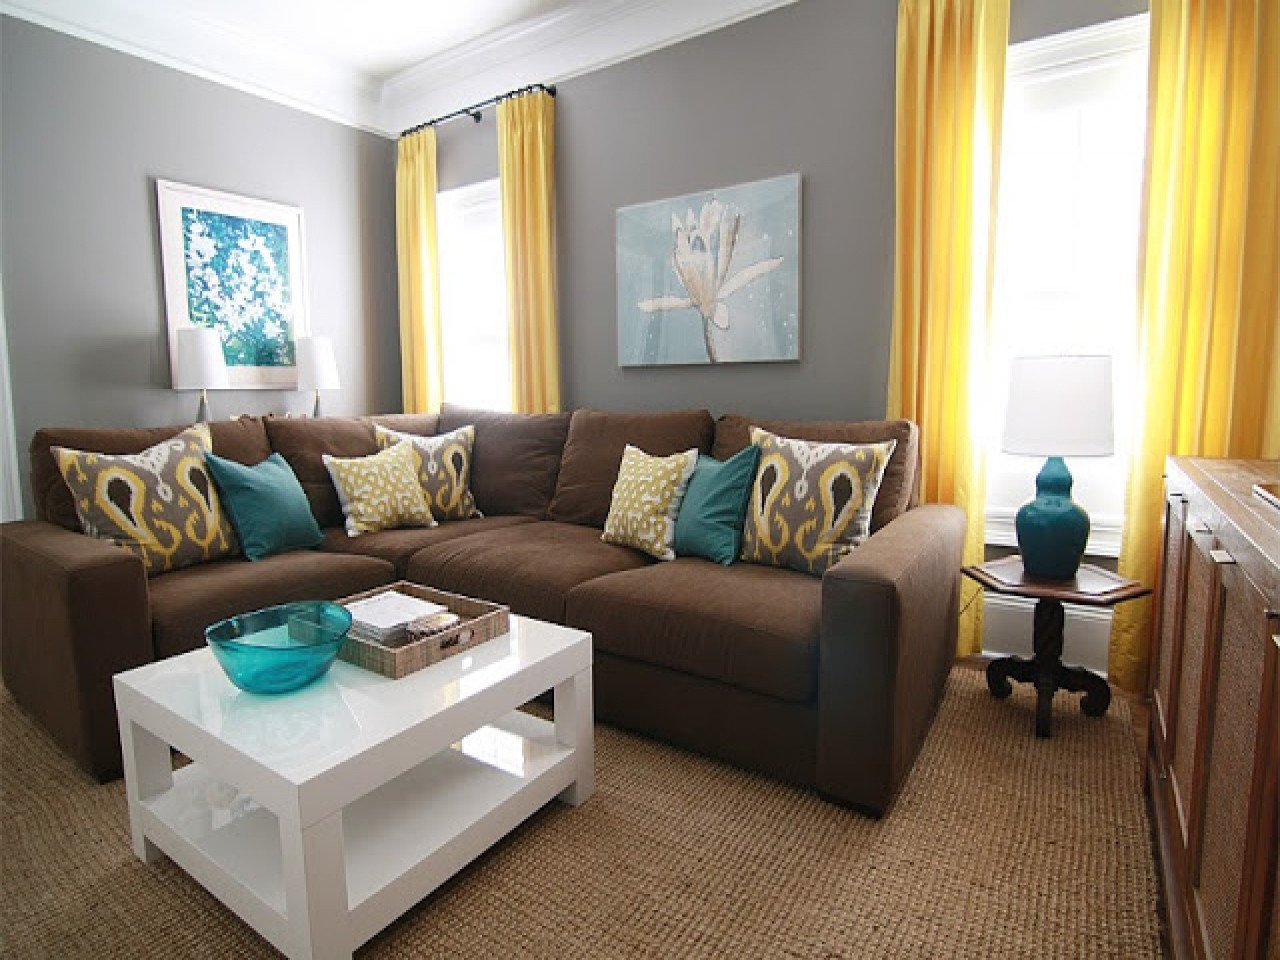 Teal And Brown Living Room Decor Modern House Teal Living Room CBRN Resource Network